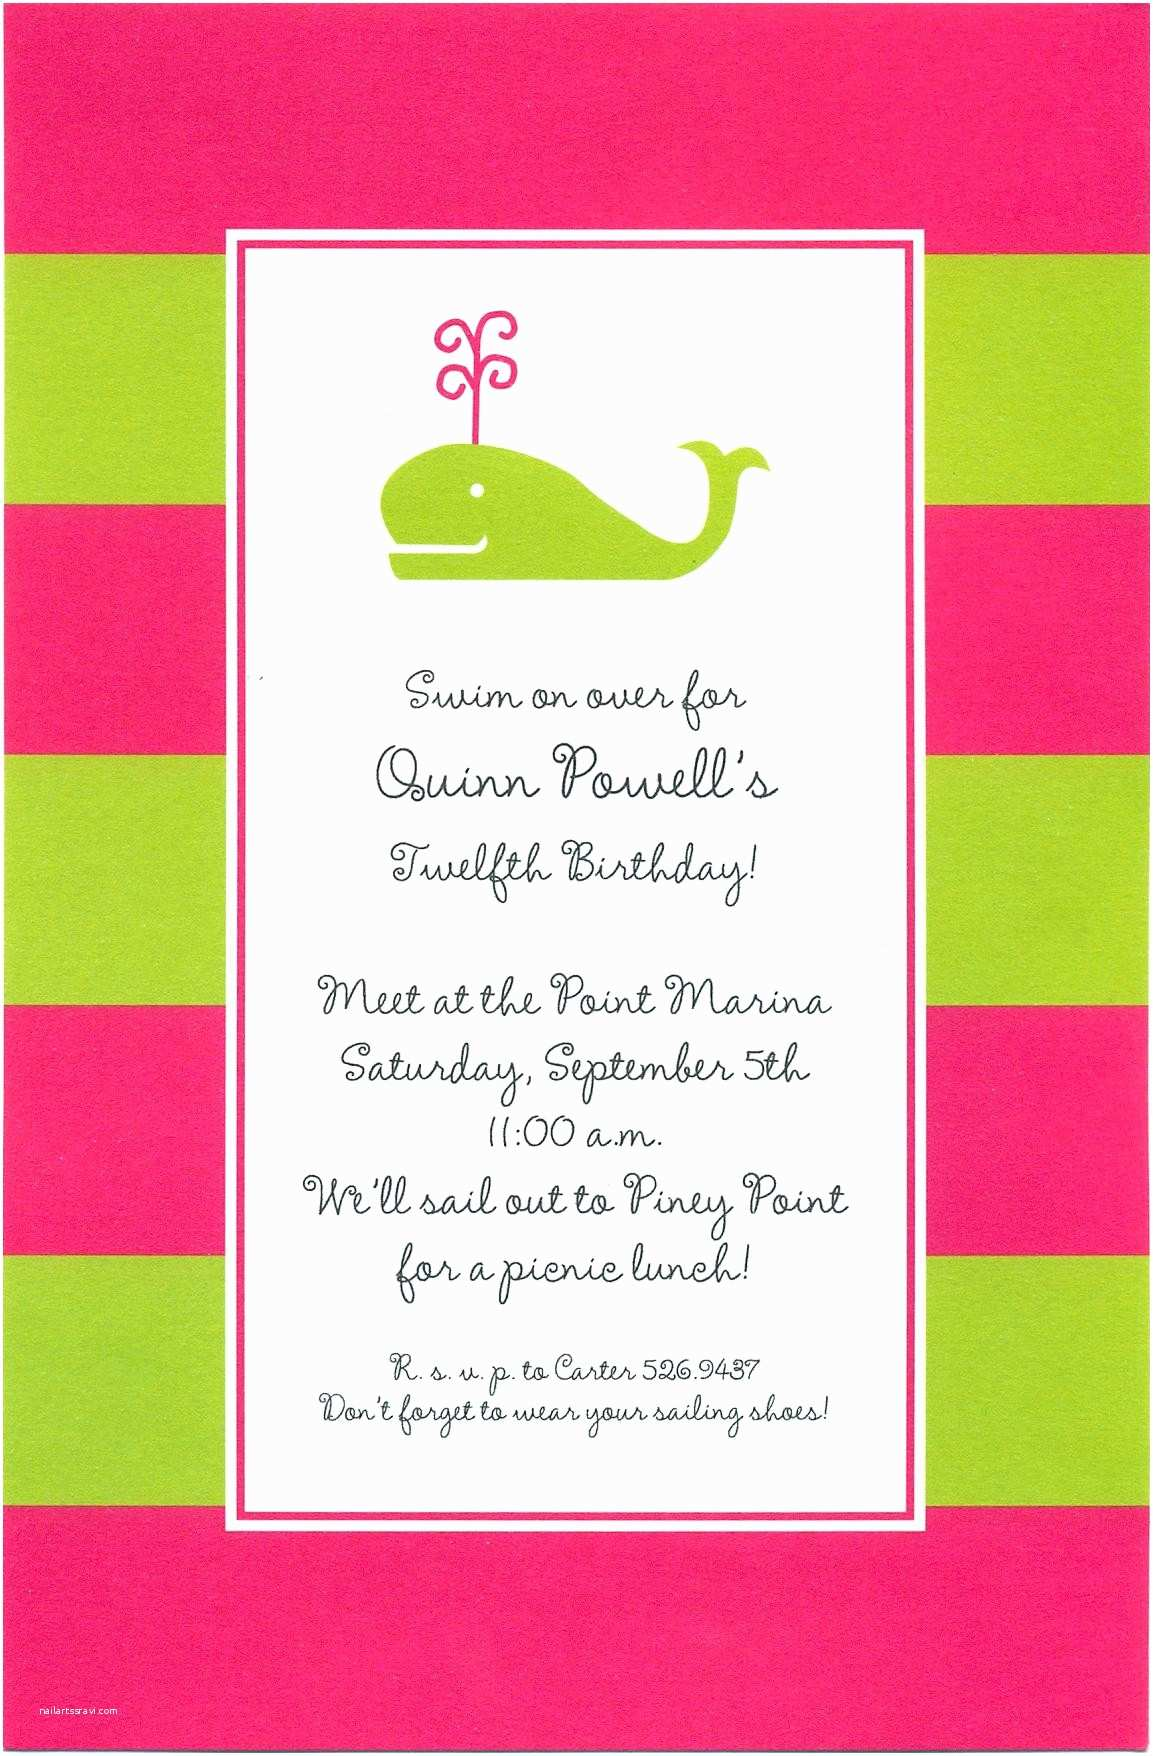 Party Invitation Sample 5th Birthday Party Invitation Quotes Invitation